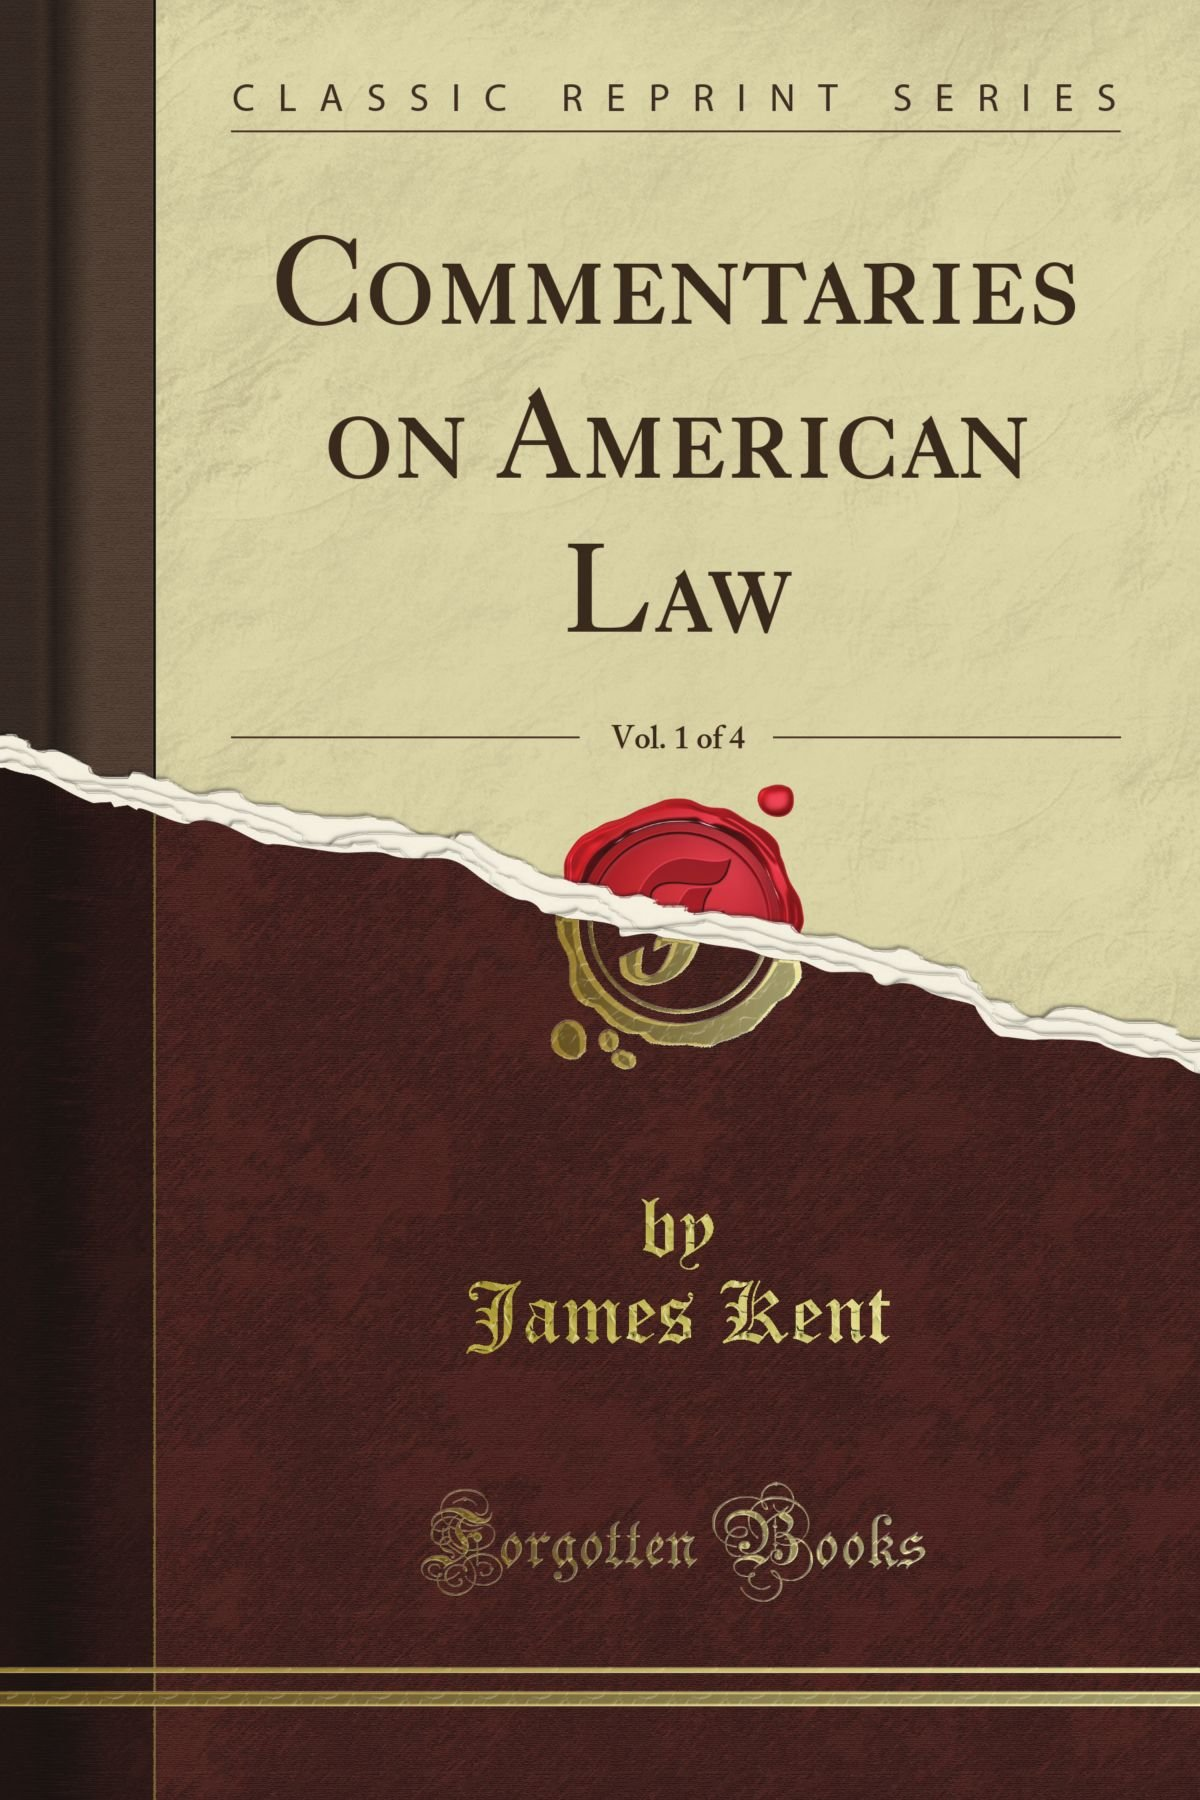 Commentaries on American Law, Vol. 1 of 4 (Classic Reprint) pdf